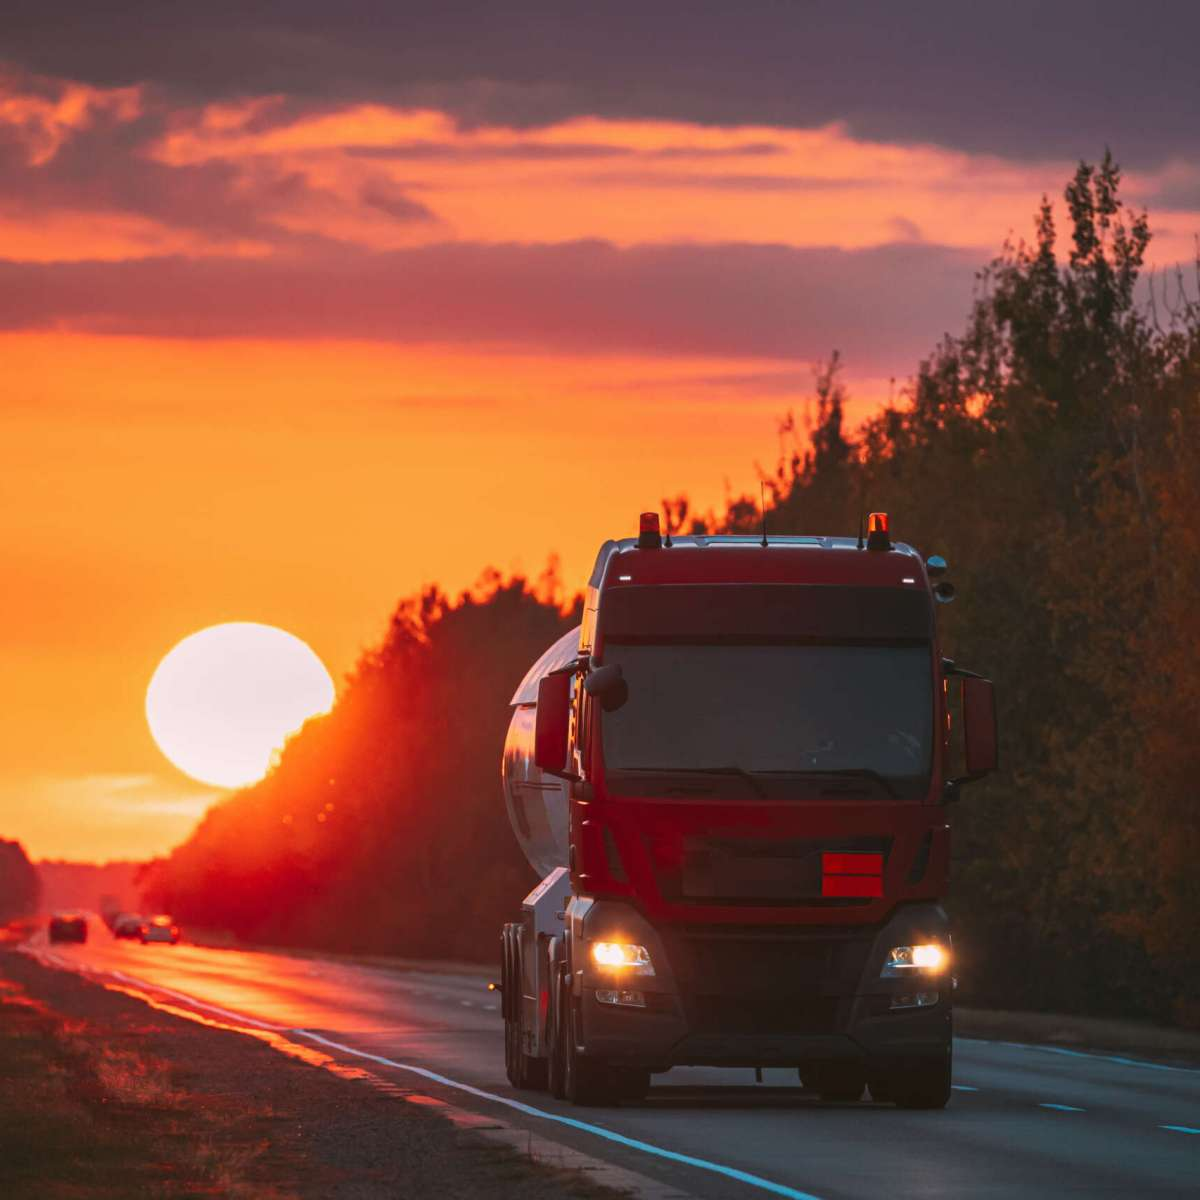 Red Truck Or Tractor Unit, Prime Mover, Traction Unit In Motion On Road, Freeway. Asphalt Motorway Highway Against Background Of Big Sunset Sun. Business Transportation And Trucking Industry